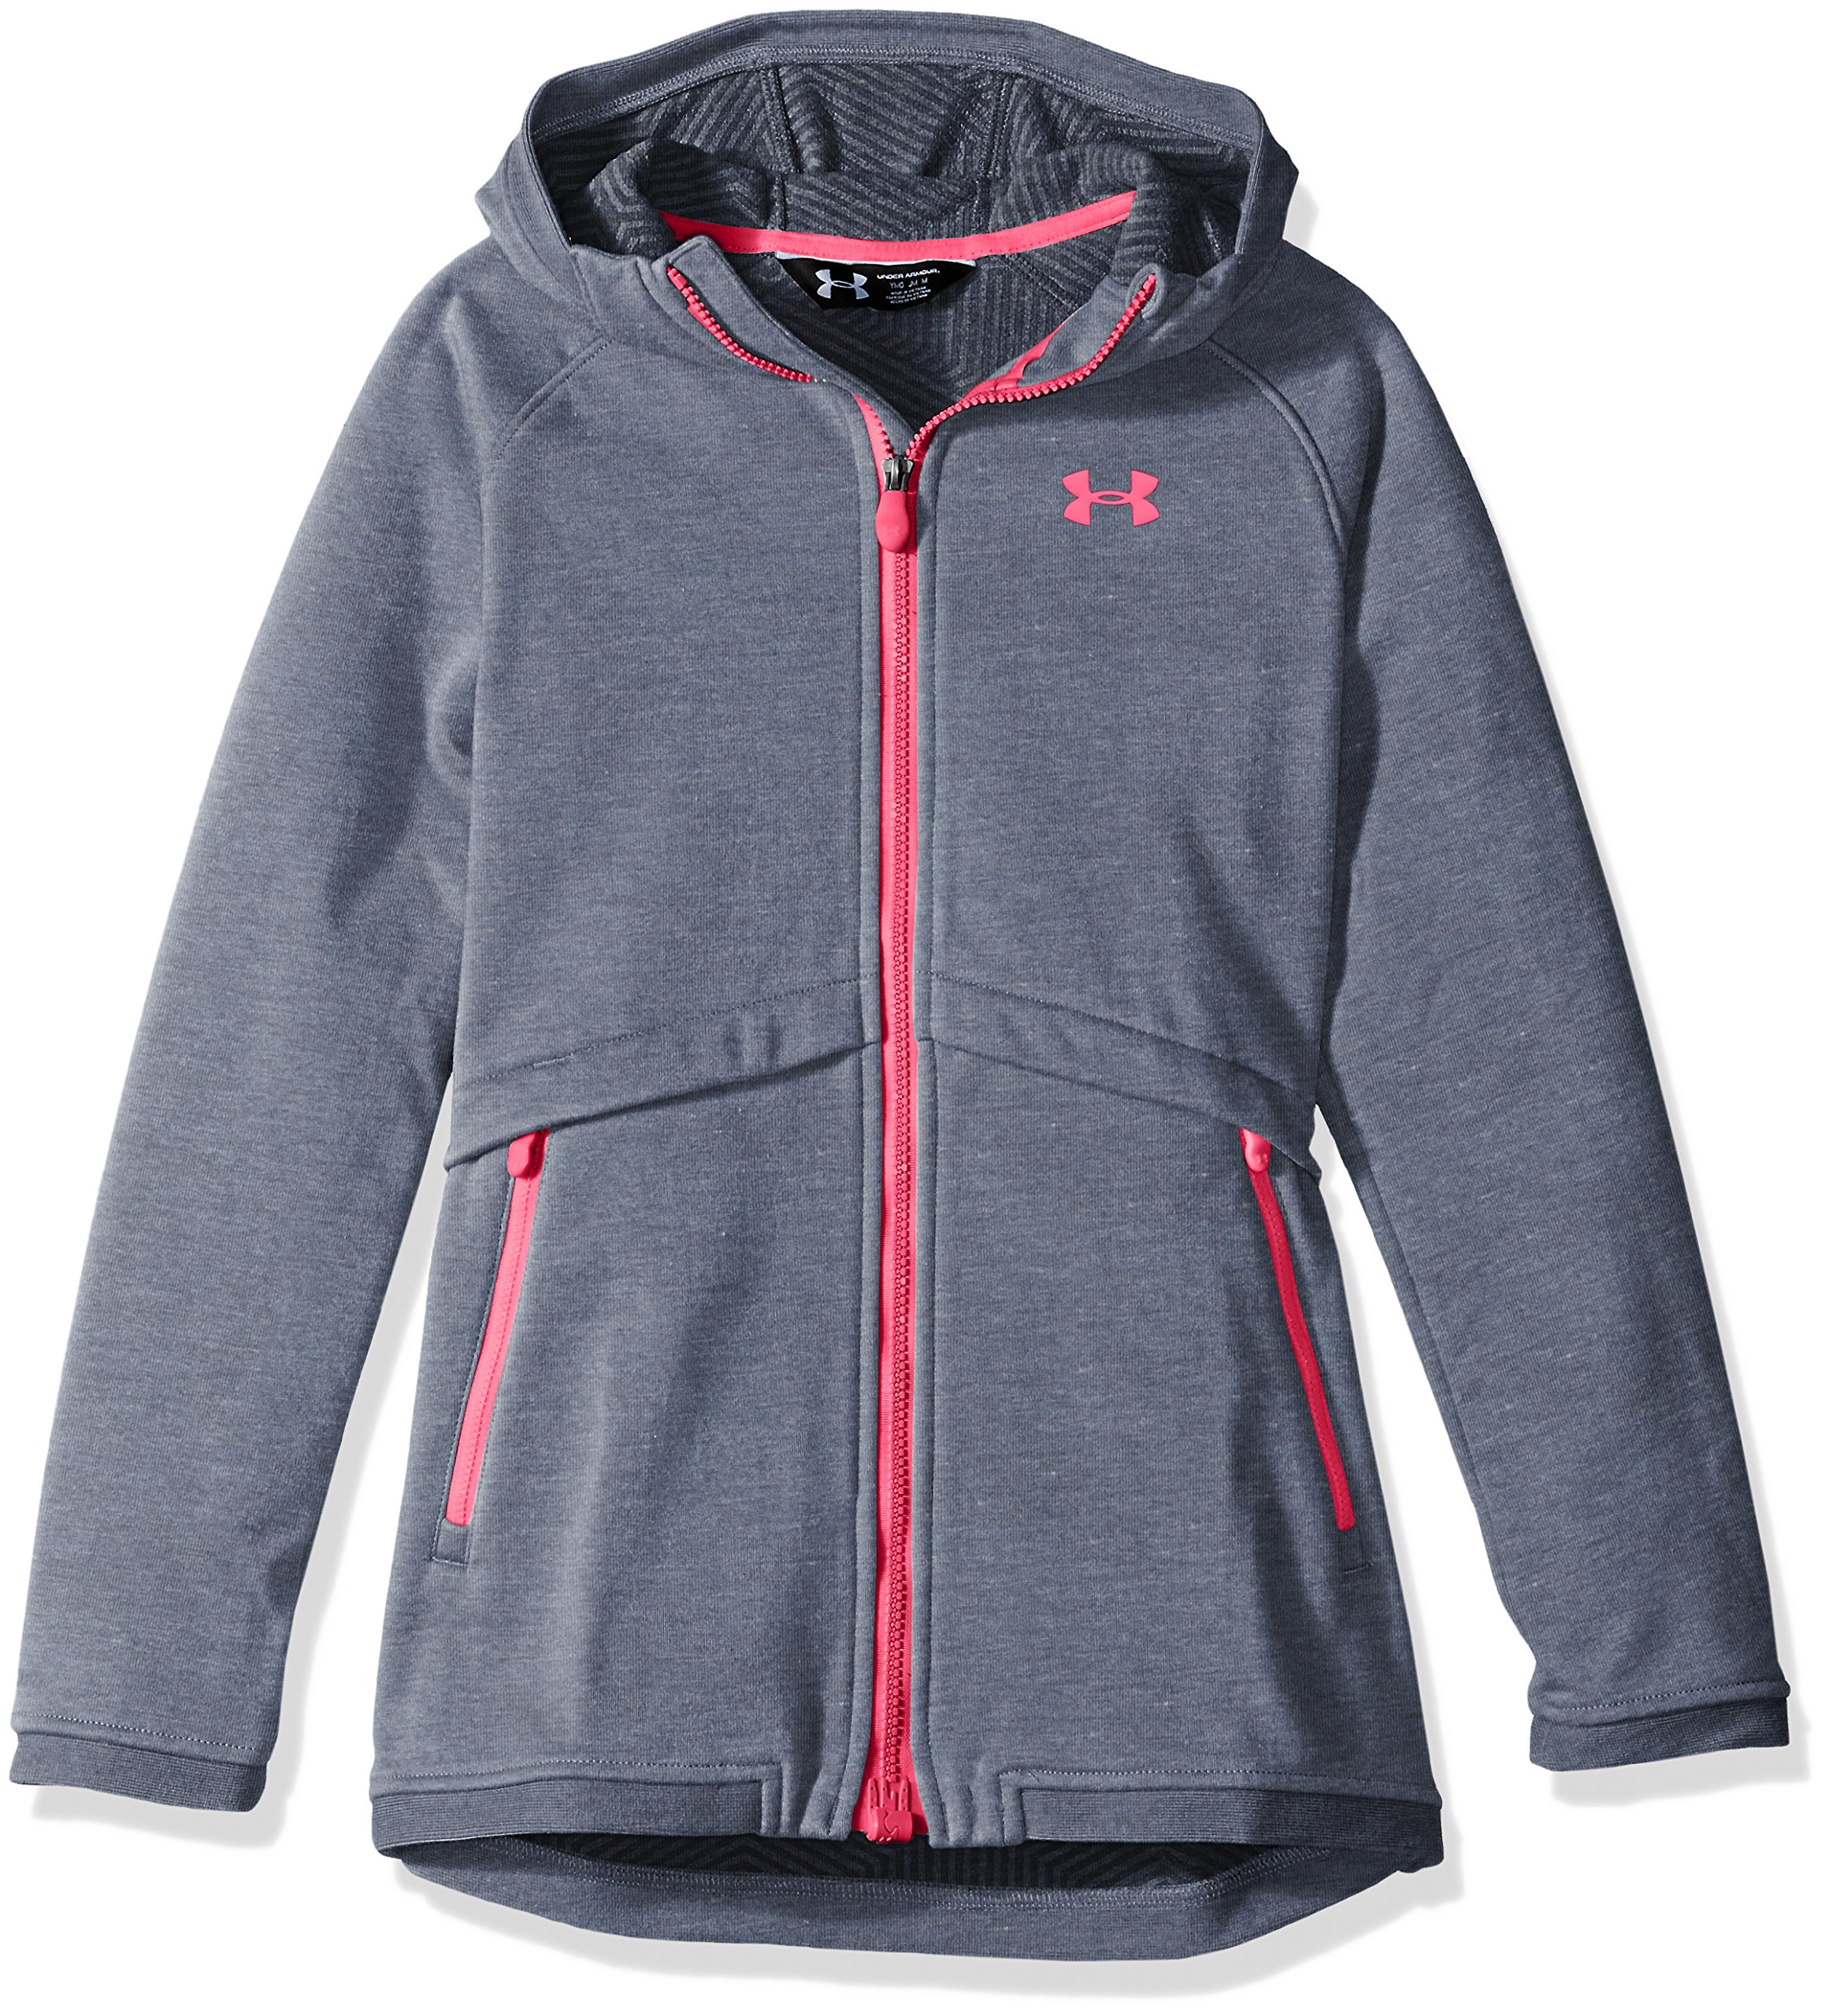 Under Armour Girls' ColdGear Infrared Dobson Softshell, Apollo Gray/Penta Pink, Youth Small